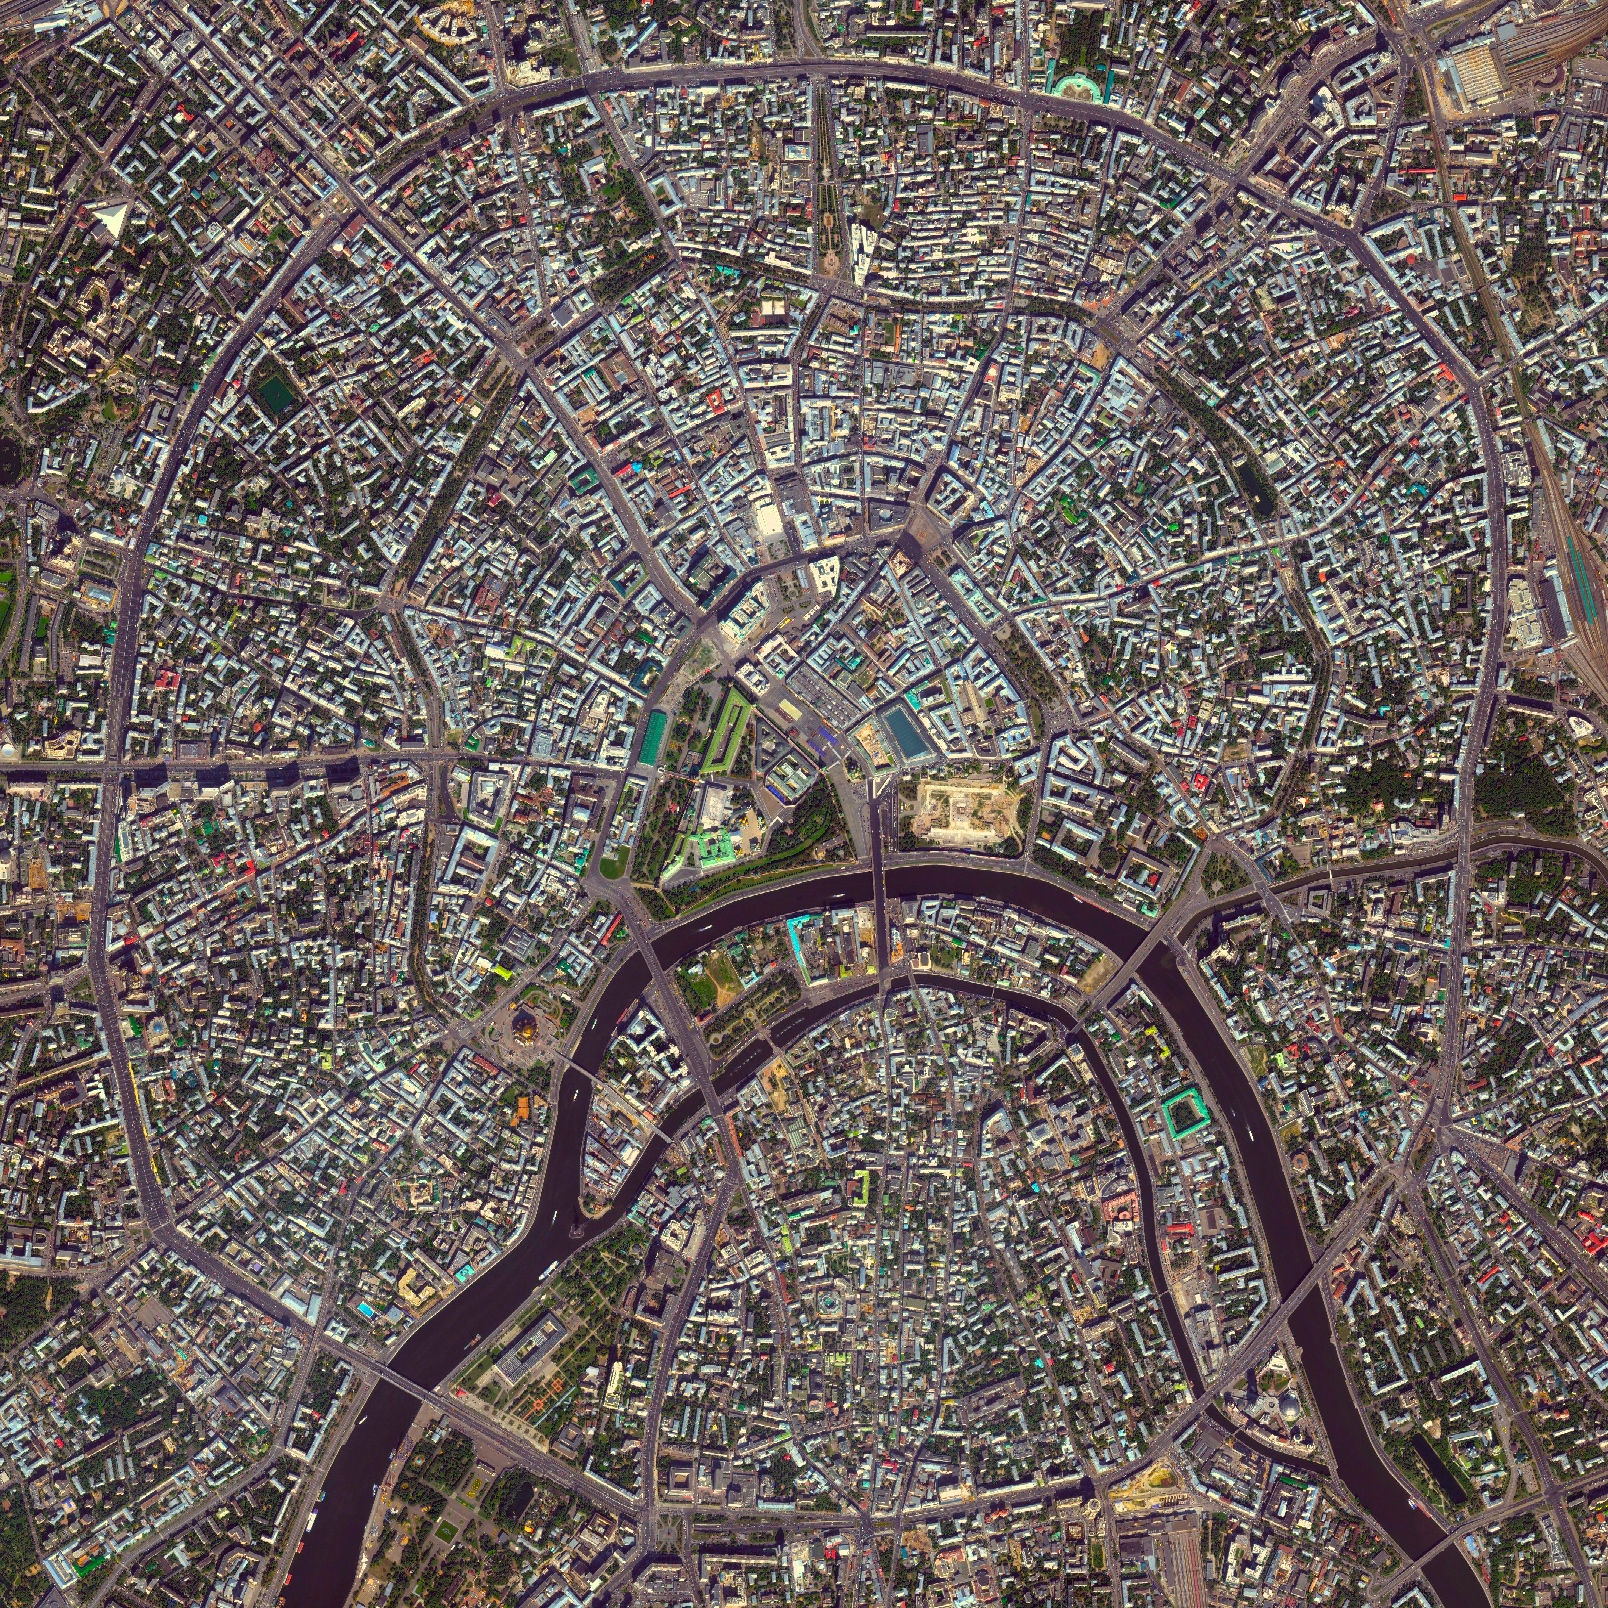 7/72015   Moscow Rings   Moscow, Russia  55°45′N 37°37′E    Moscow is the capital and largest city in Russia with 12.2 million residents. The city is organized into five concentric transportation rings that surround the Kremlin. The two innermost rings are seen here.